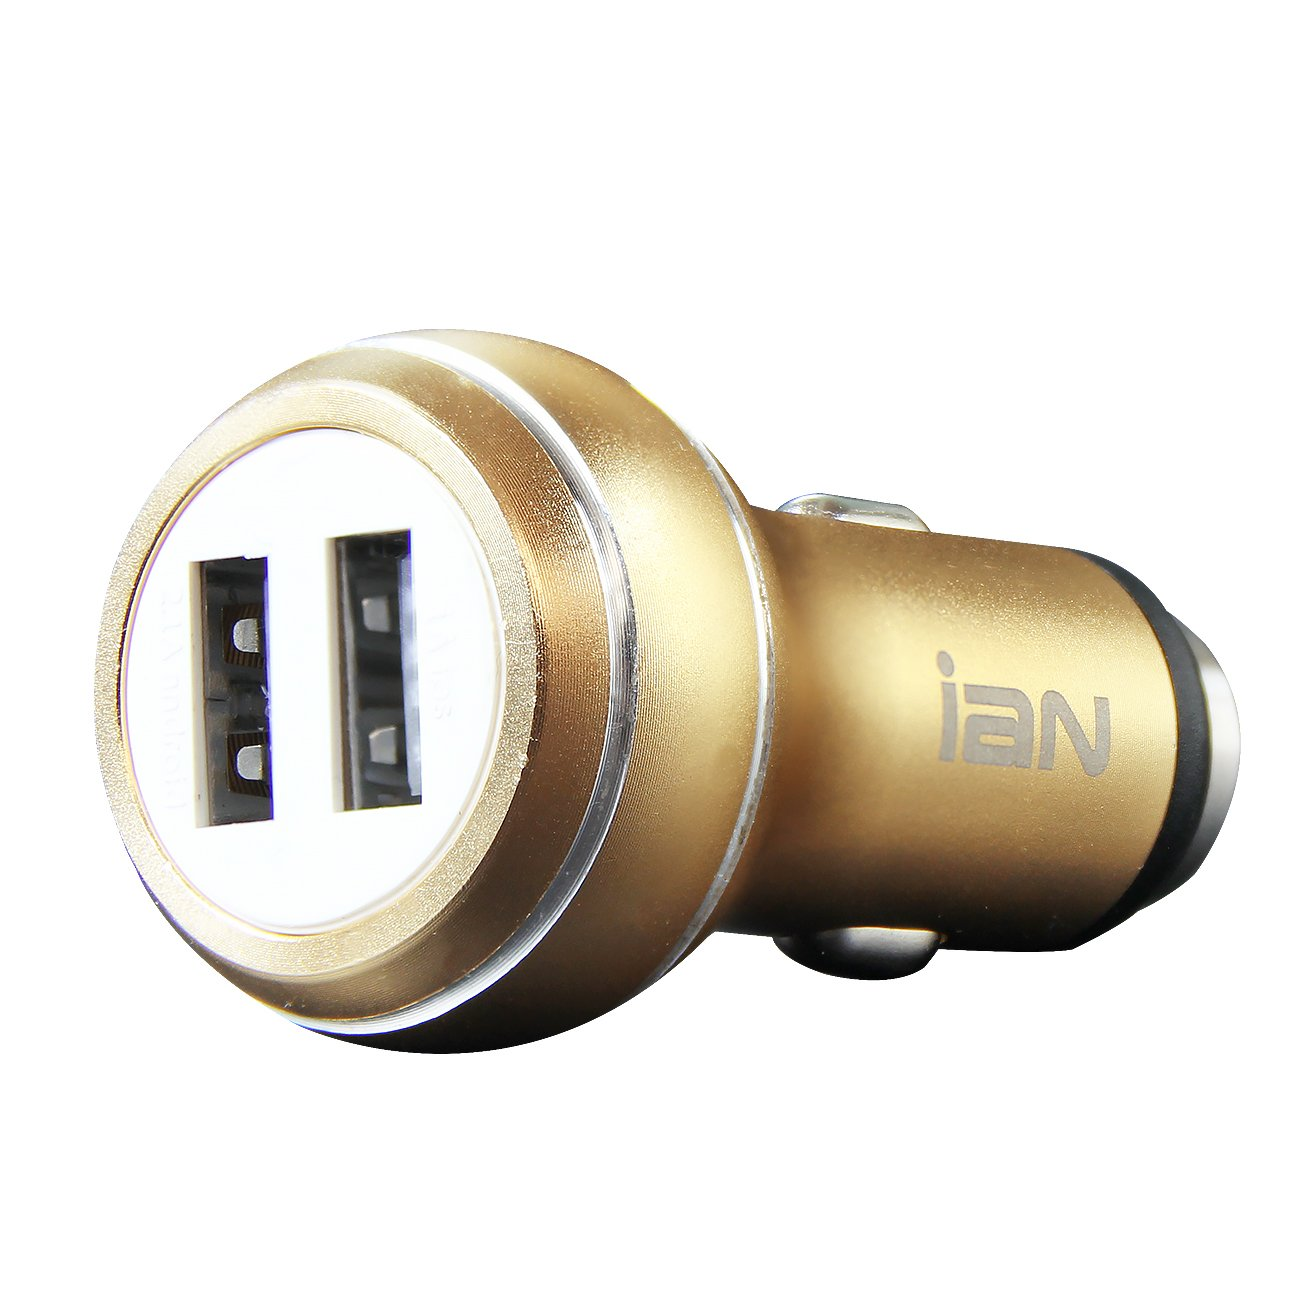 ASJ 24W Dual USB Car Charger, PowerDrive 2 for iPhone 7 / 6s / Plus, iPad Pro / Air 2 / mini, Galaxy S7 / S6 / Edge / Plus, Note 5 / 4, LG, Nexus, HTC and More (Gold)